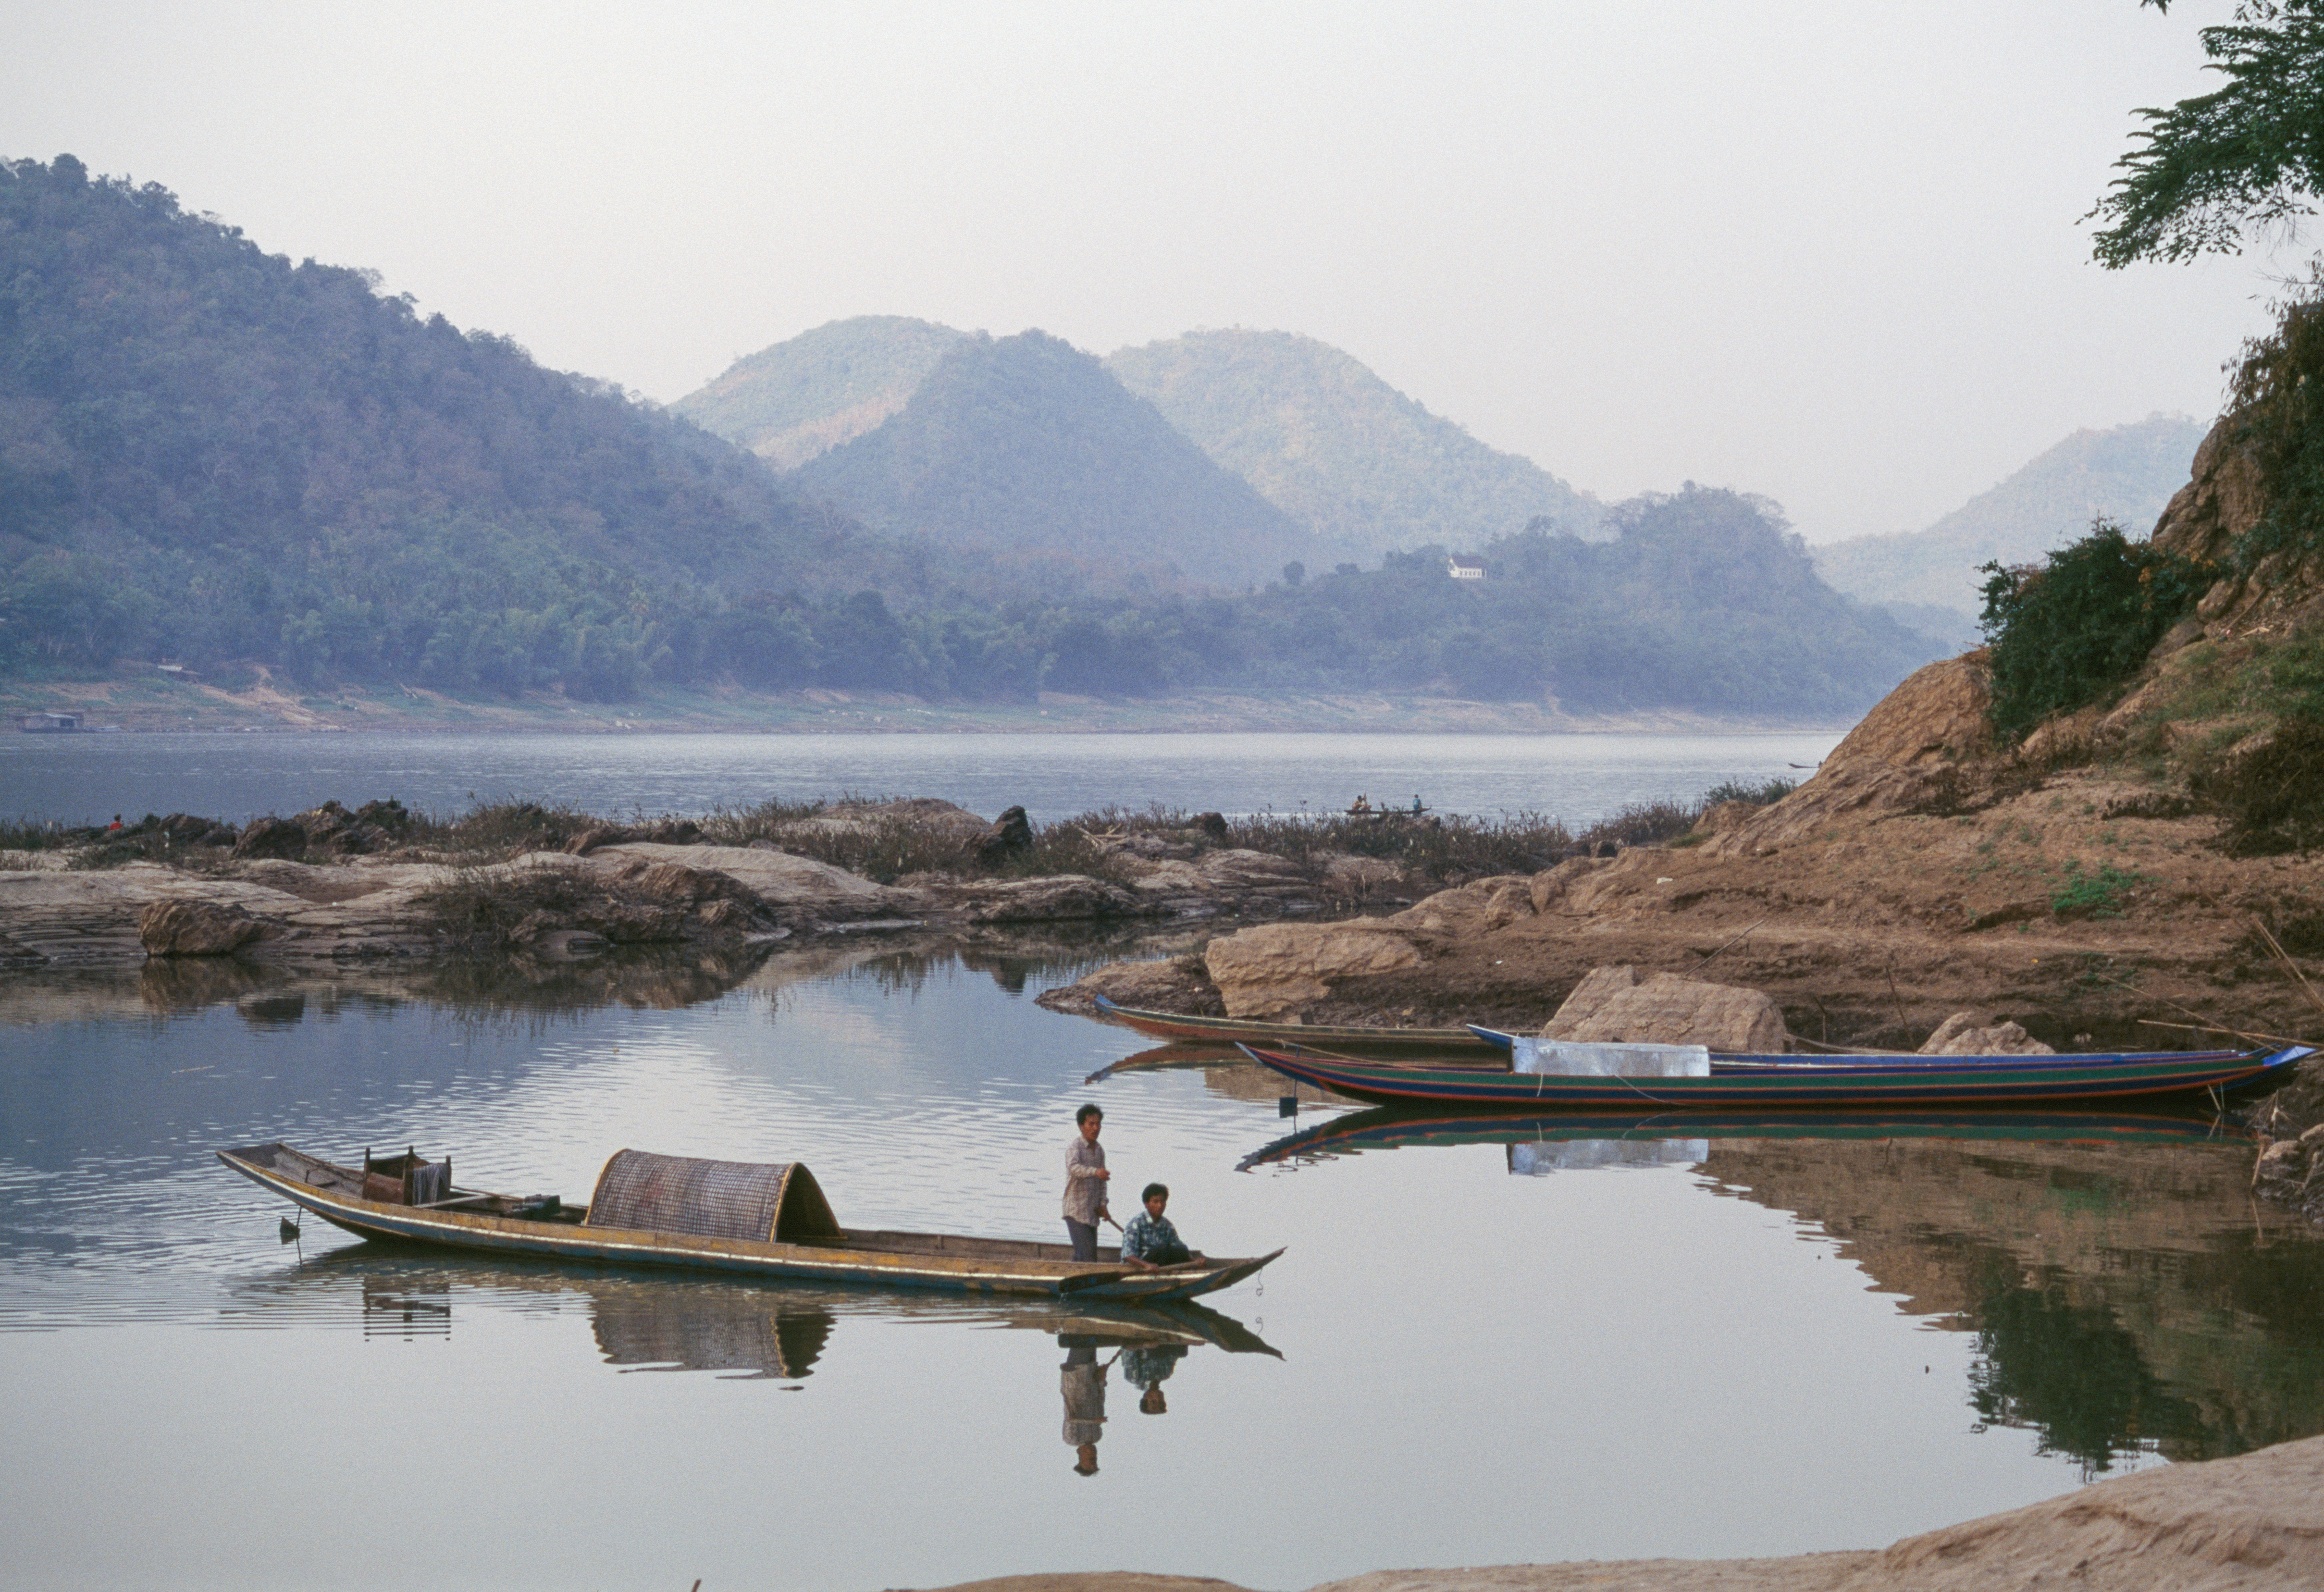 Boat on the Mekong River, Laos.